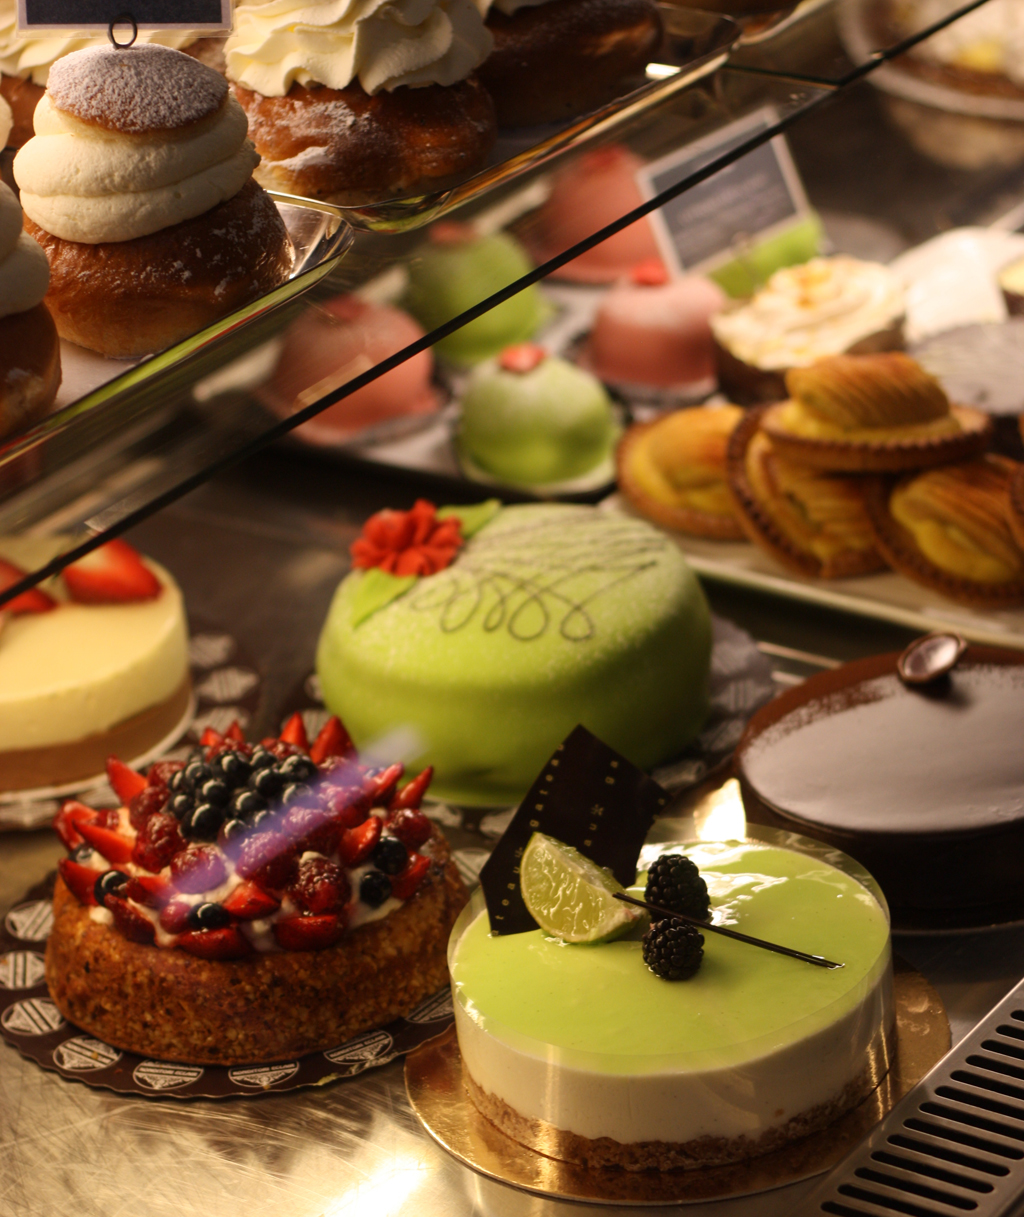 cakes at Saluhall by madame love